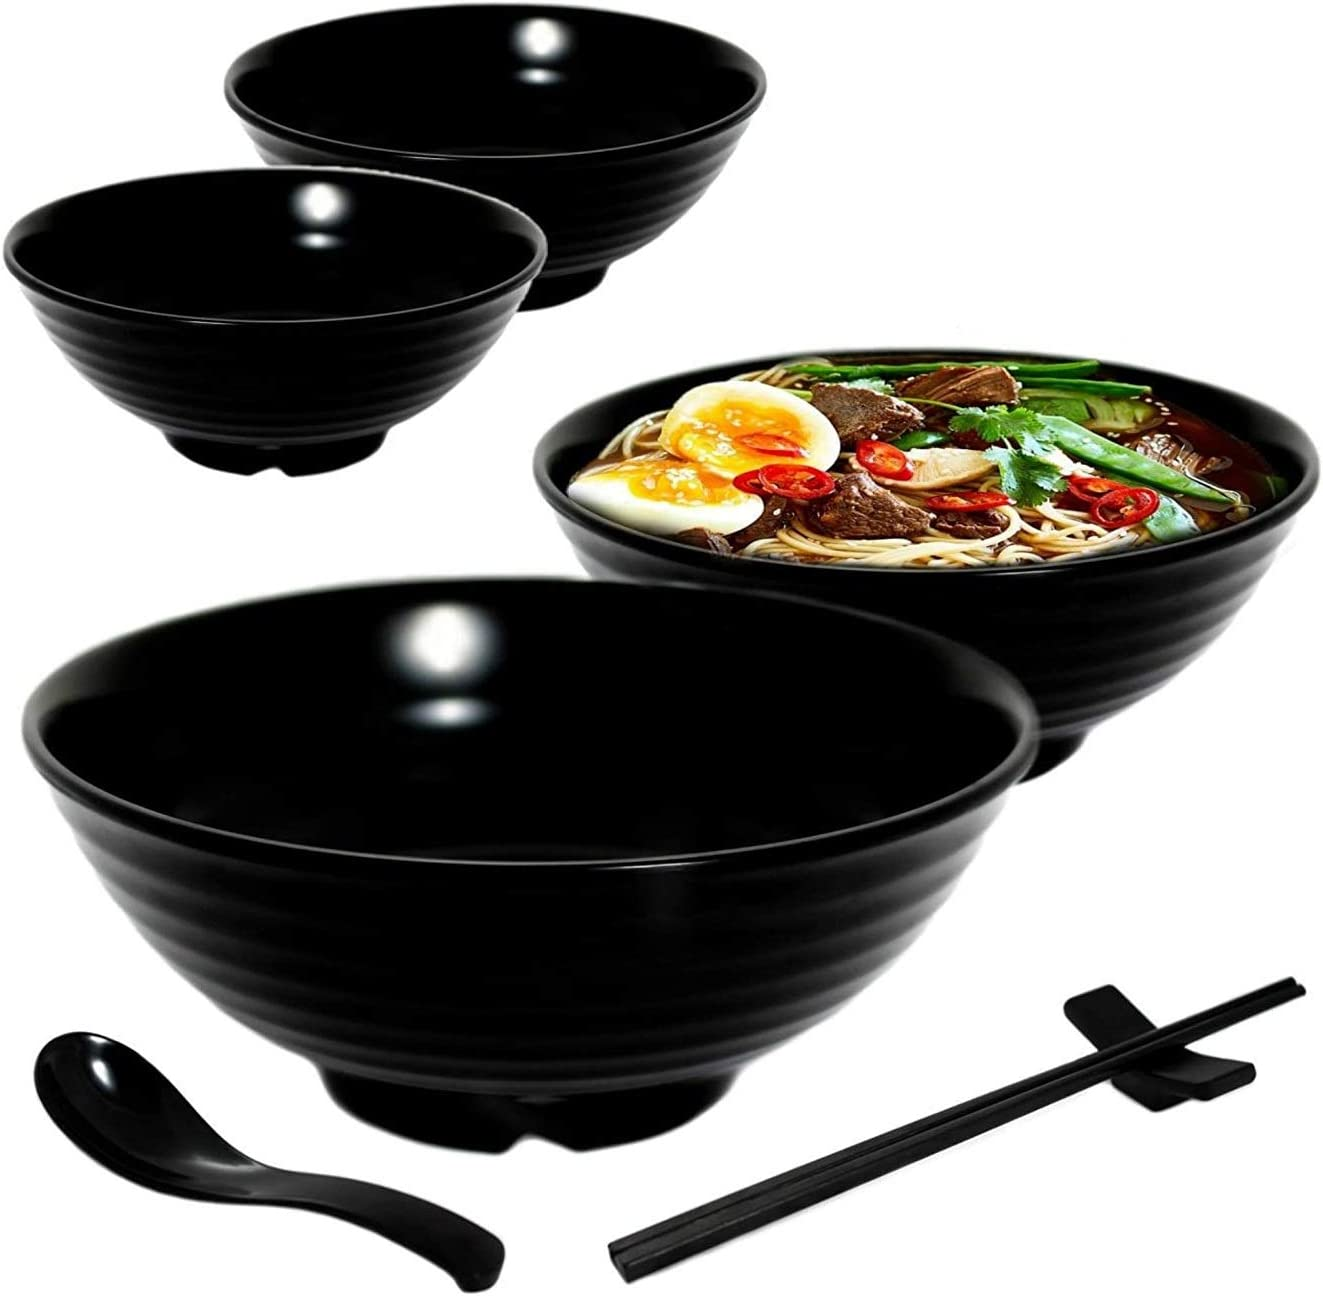 Details about  /Noodle Soup Bowl with Bamboo Chopsticks and Ceramic Spoon